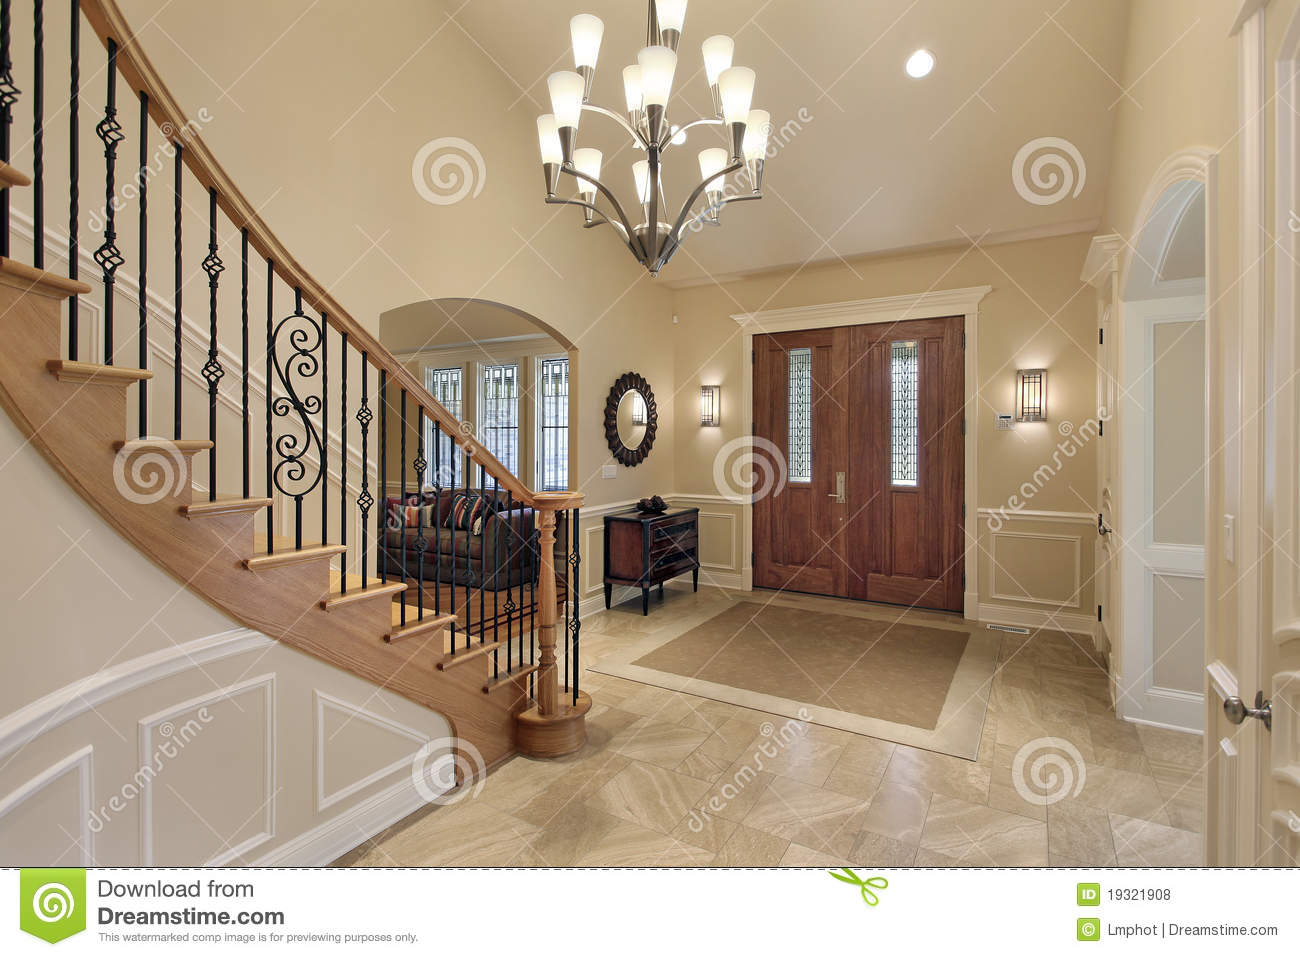 Foyer with curved staircase royalty free stock photos for House plans with stairs in foyer